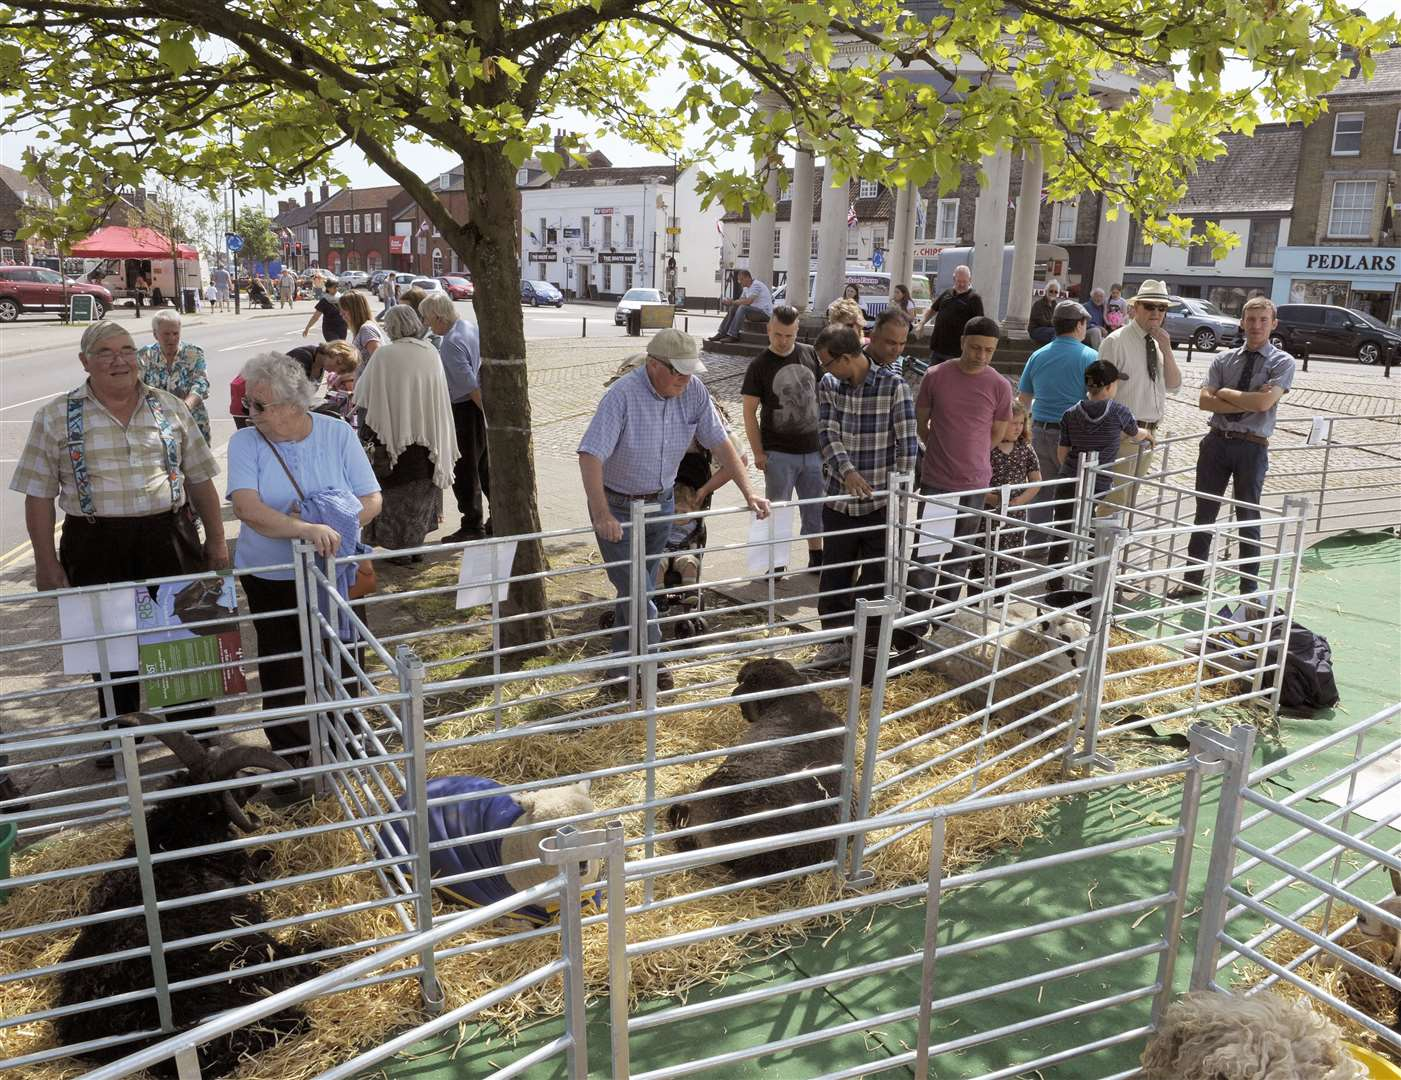 An Events, Tourism and Business Committee at Swaffham Town Council would continue to oversee events in the town like the Sheep Fair